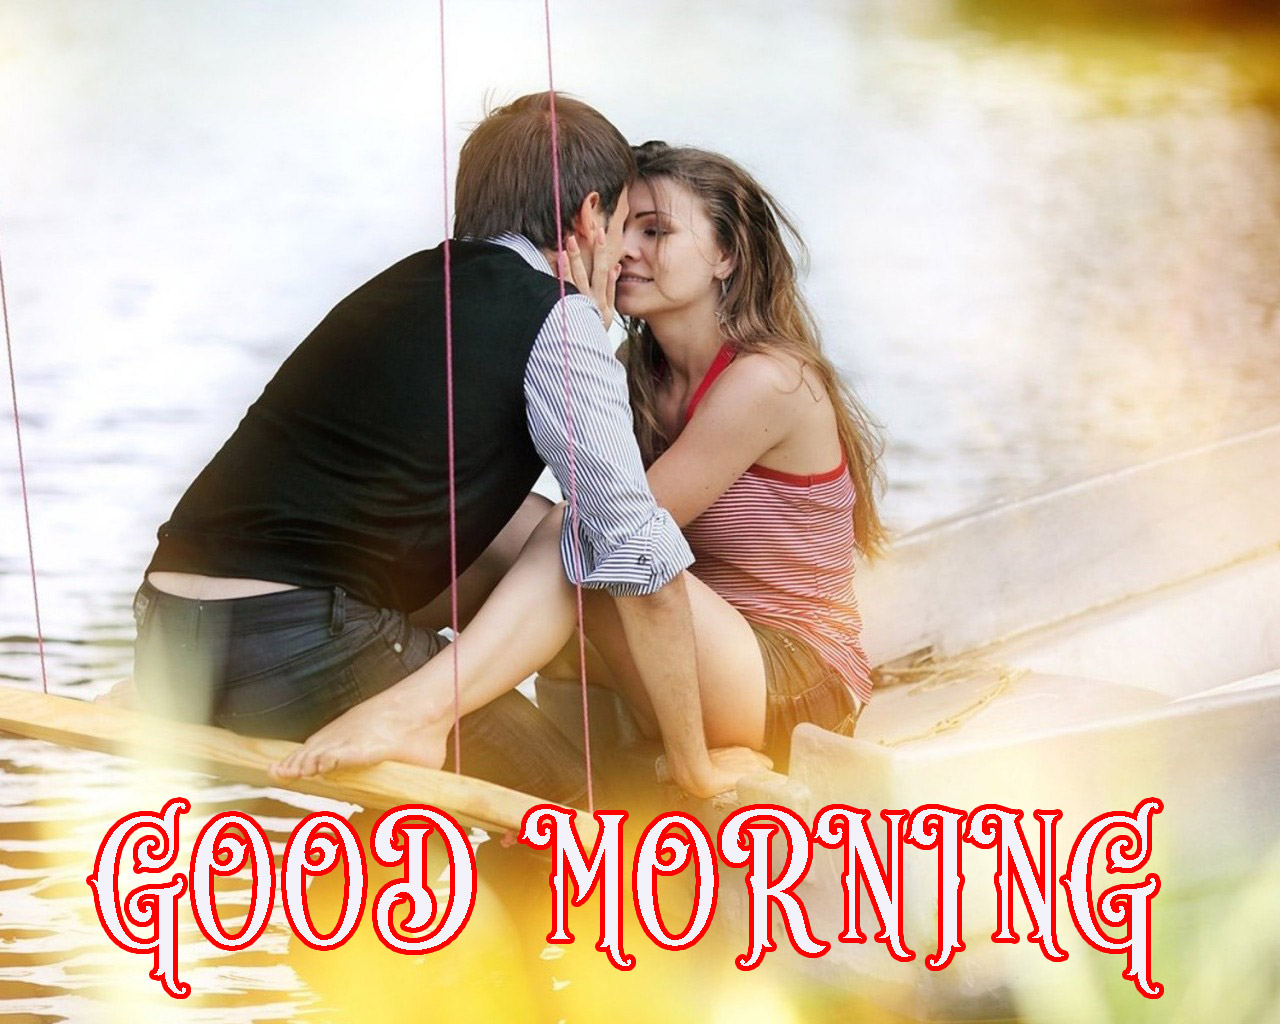 Good Morning Images Wallpaper Pictures Pics Photo Free HD